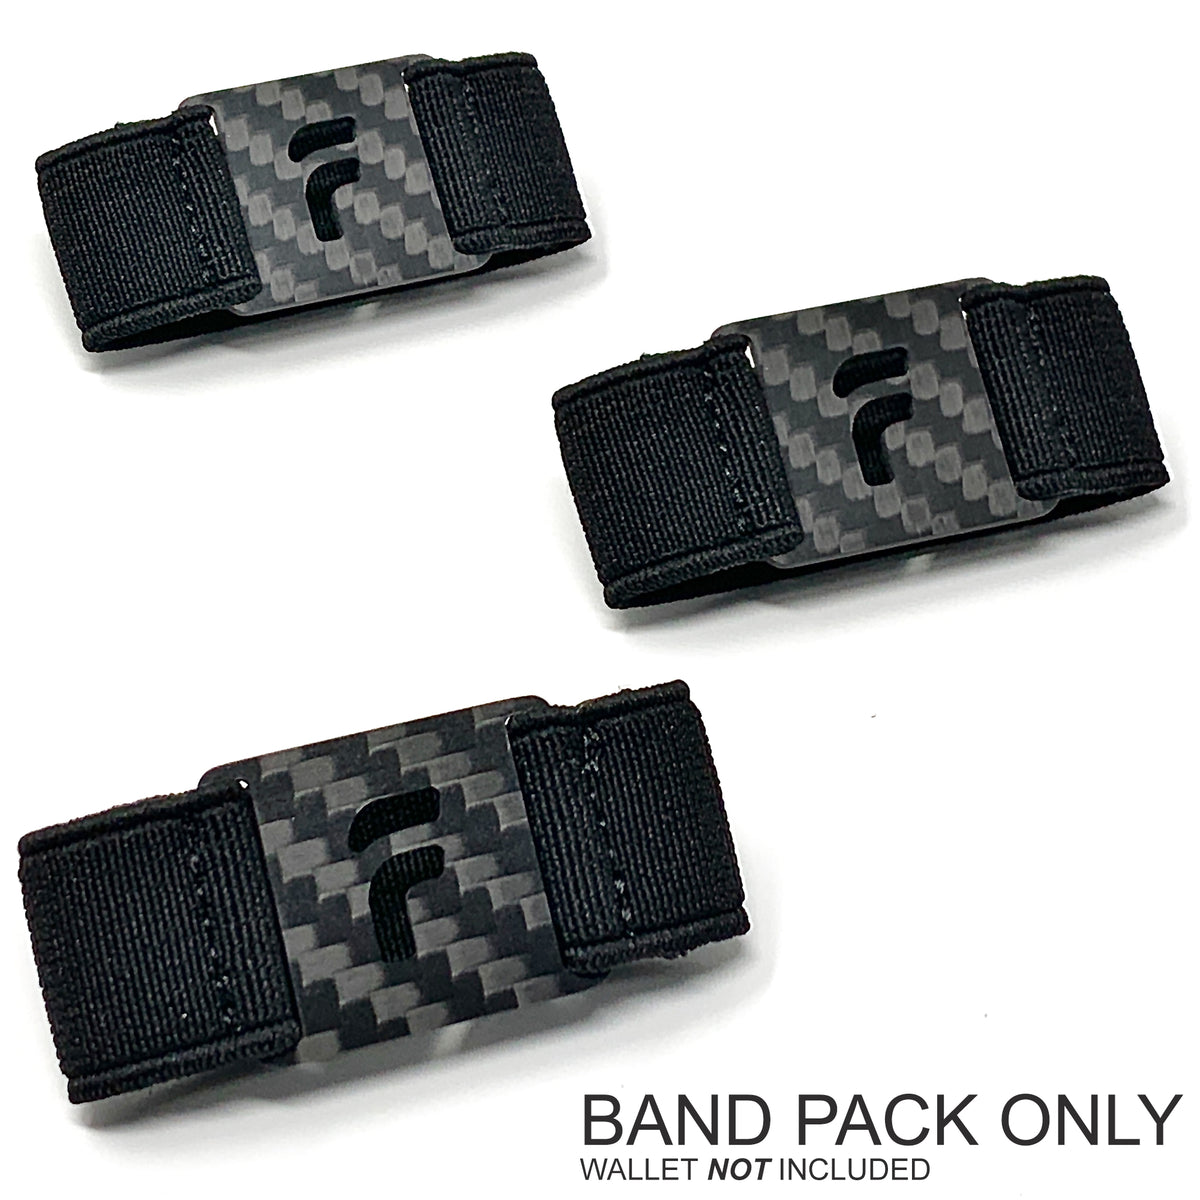 PRESTIGE BAND PACK ONLY (3 Bands - Onyx Black) Wallet NOT Included